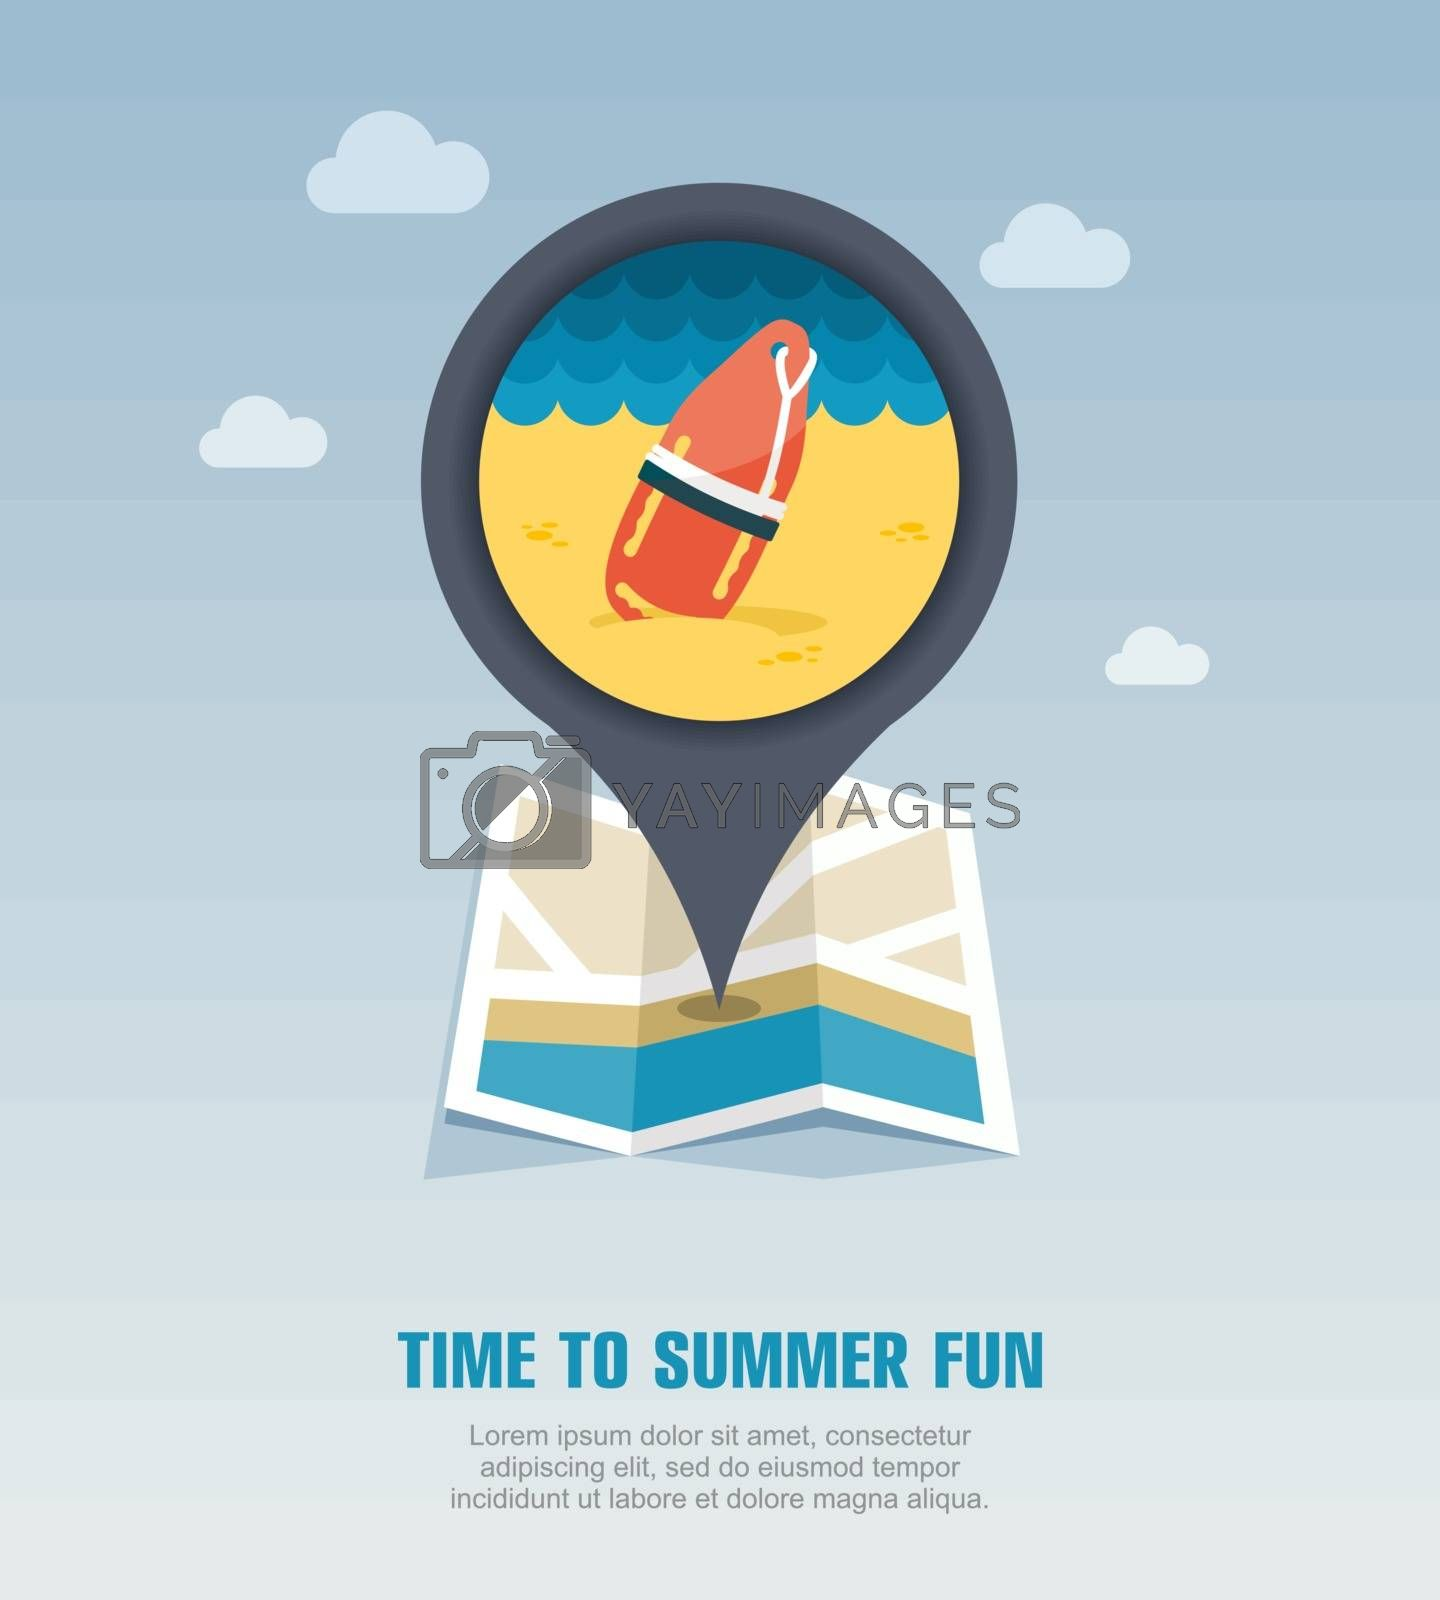 Torpedo lifeguard buoy pin map icon. Summer by nosik